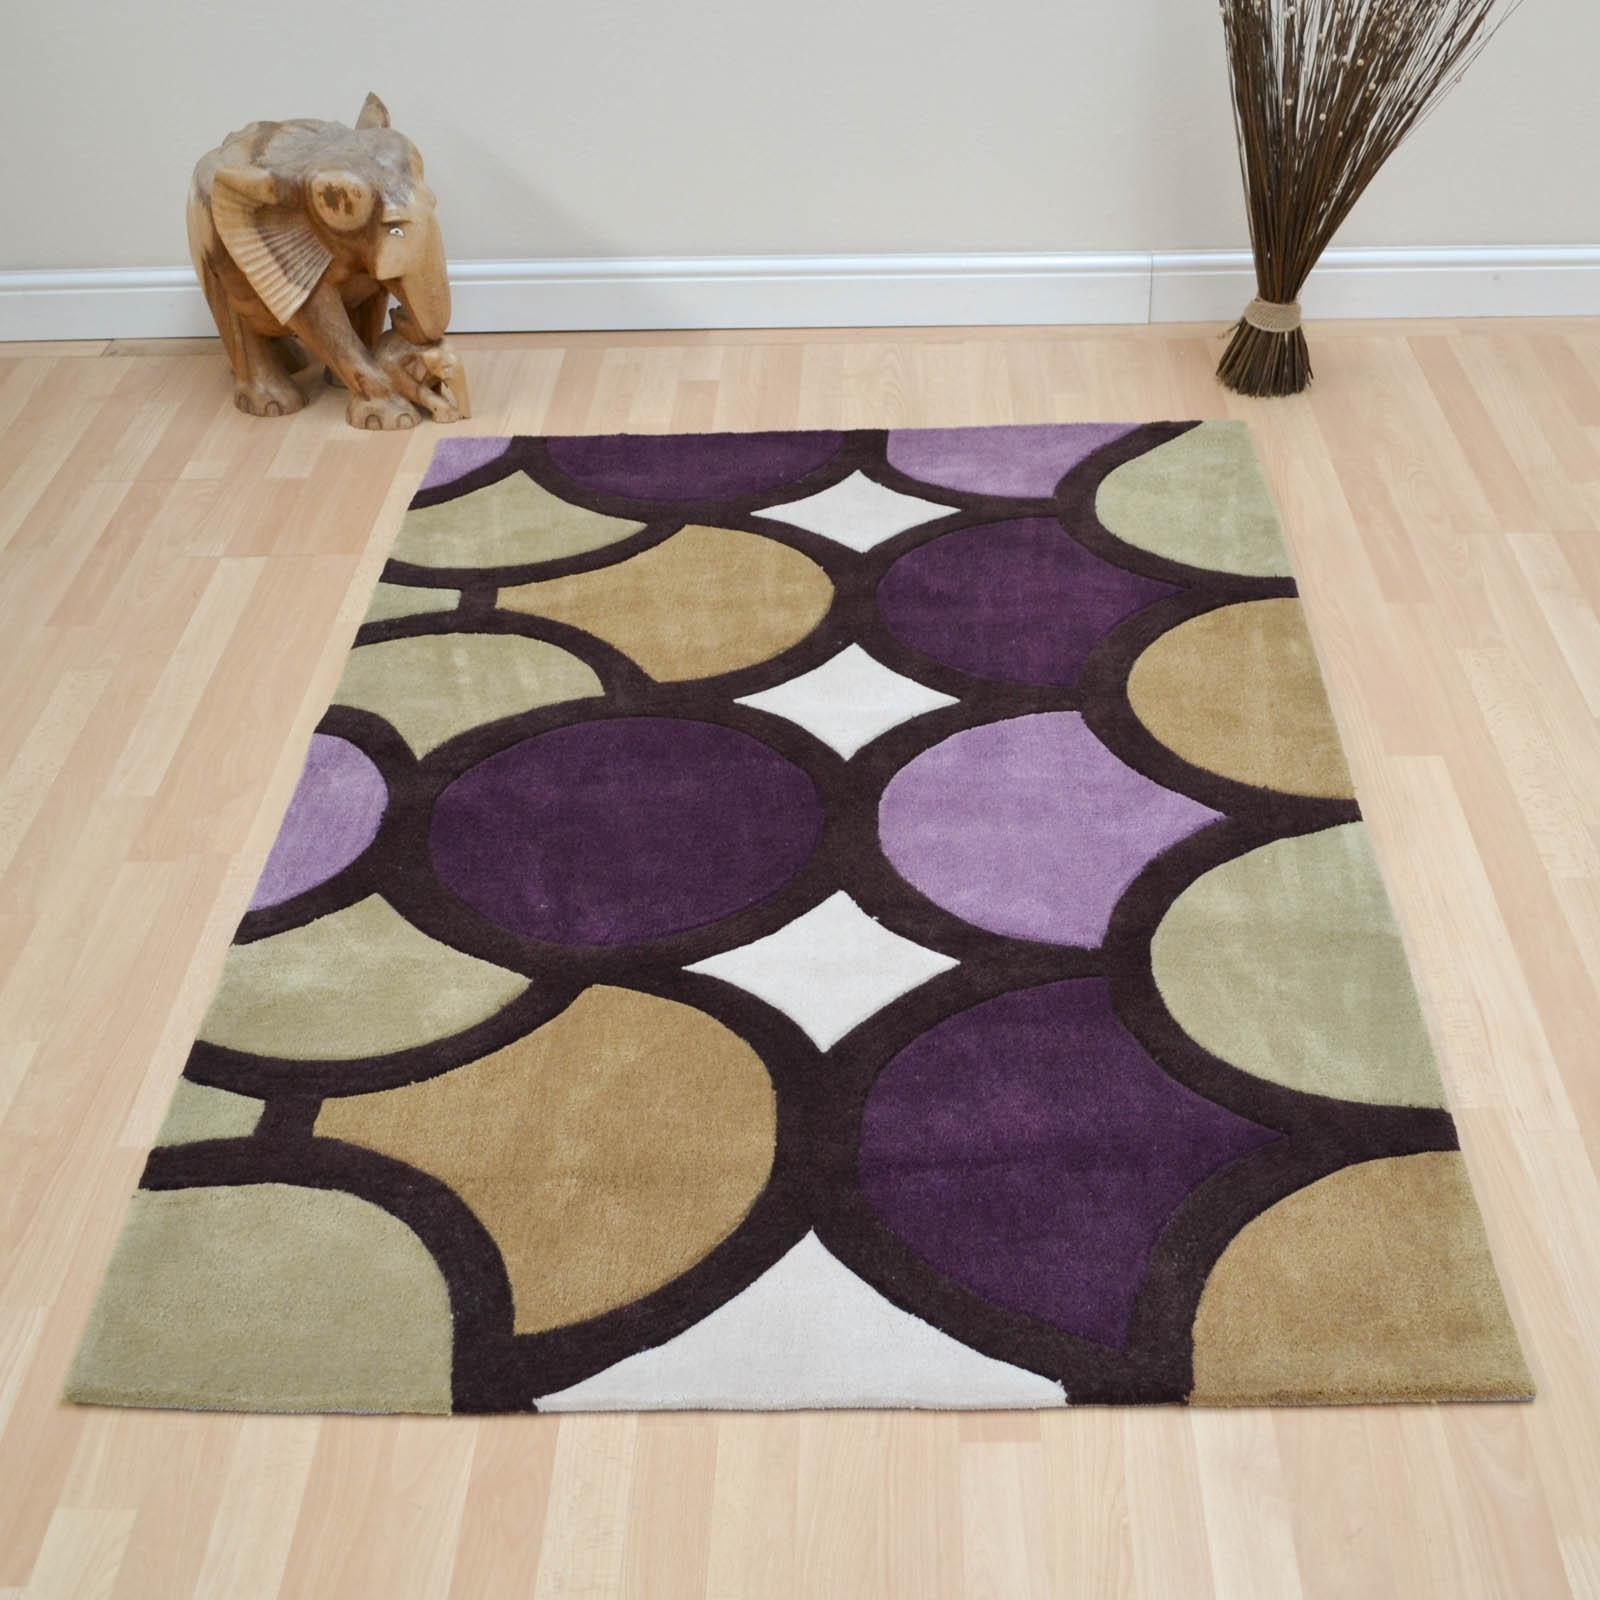 Harlequin Rugs Uk Roselawnlutheran Pertaining To Harlequin Rugs (Image 6 of 15)